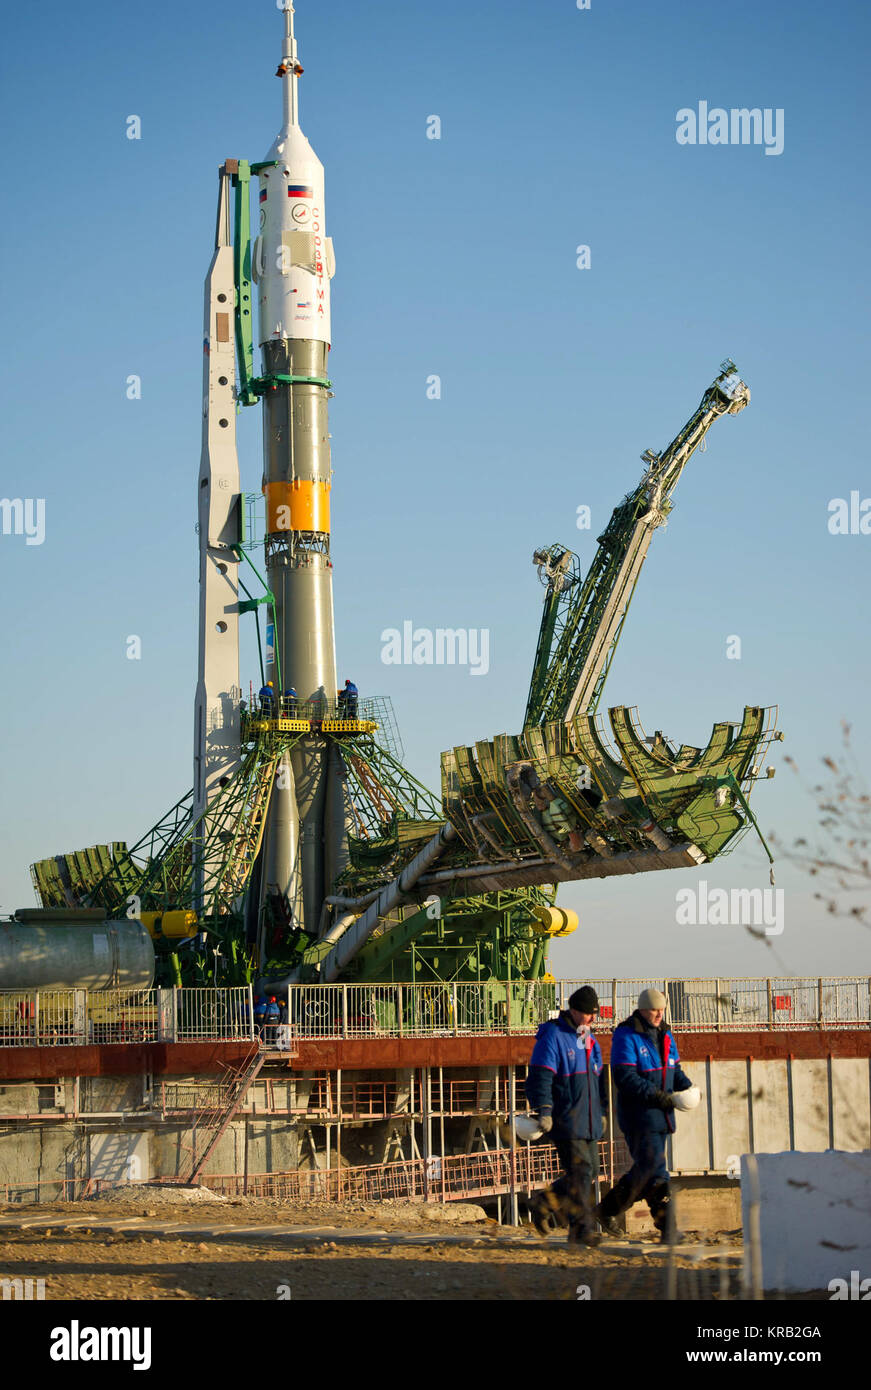 The Soyuz TMA-22 spacecraft is seen at the launch pad after being raised into vertical position on Friday, Nov. - Stock Image